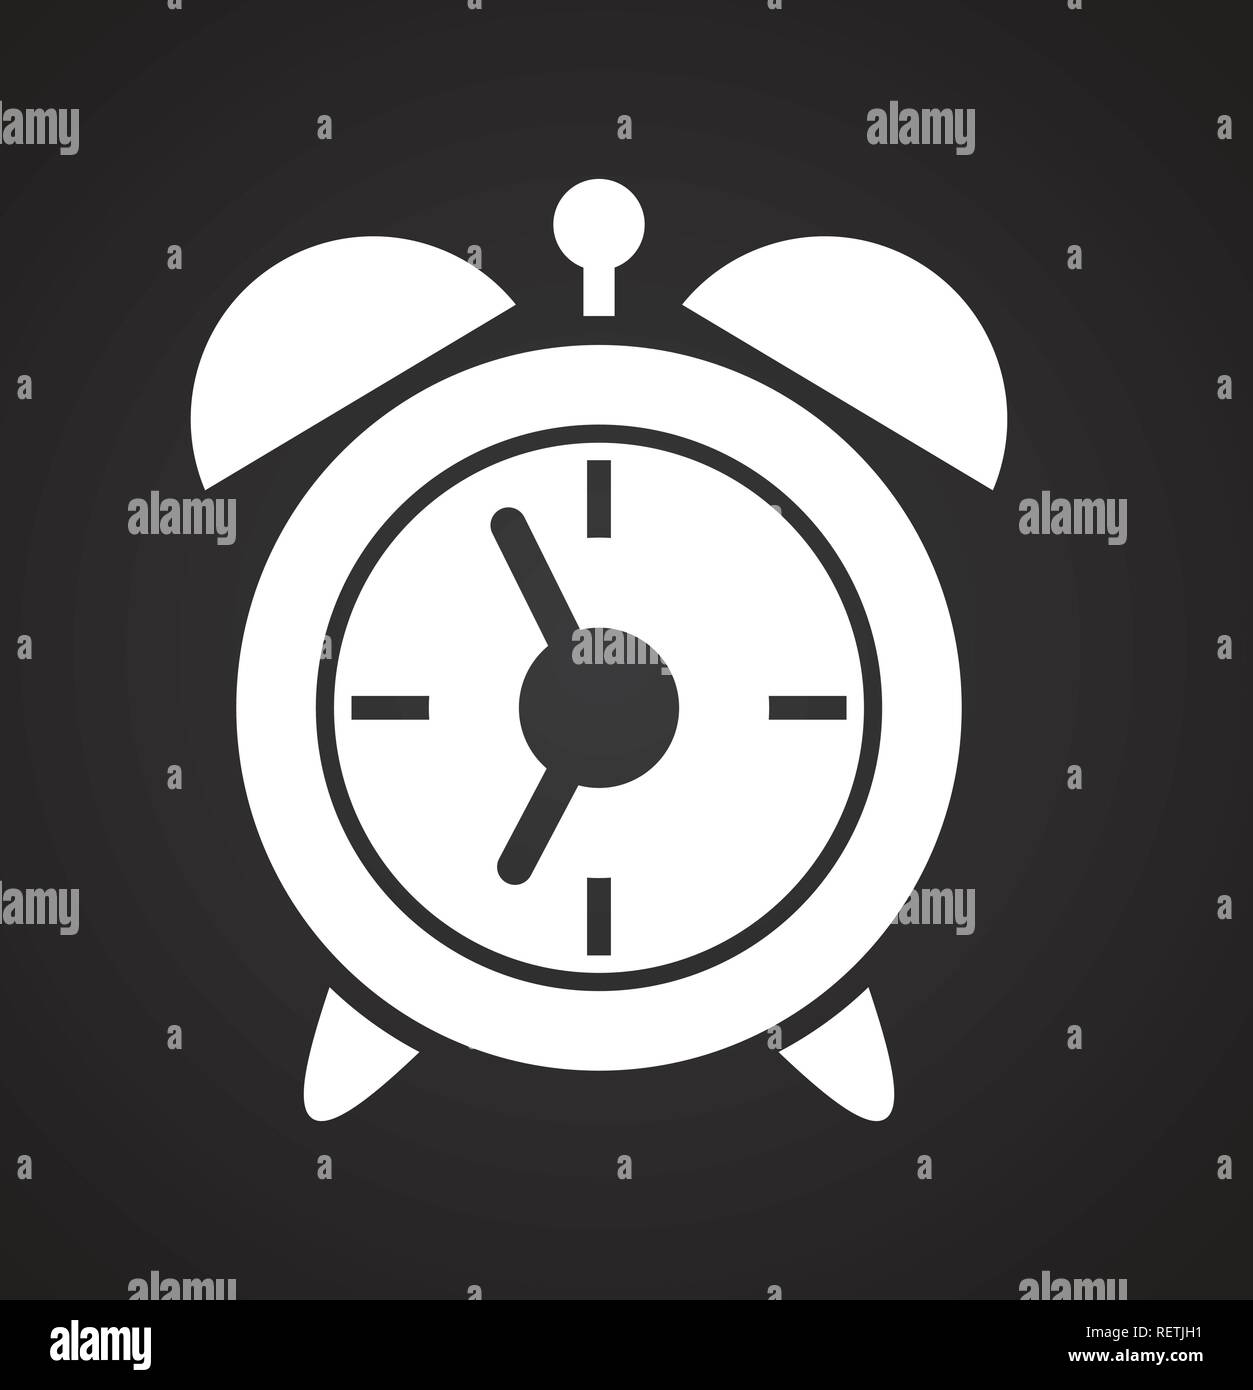 Alarm clock icon on black background for graphic and web design